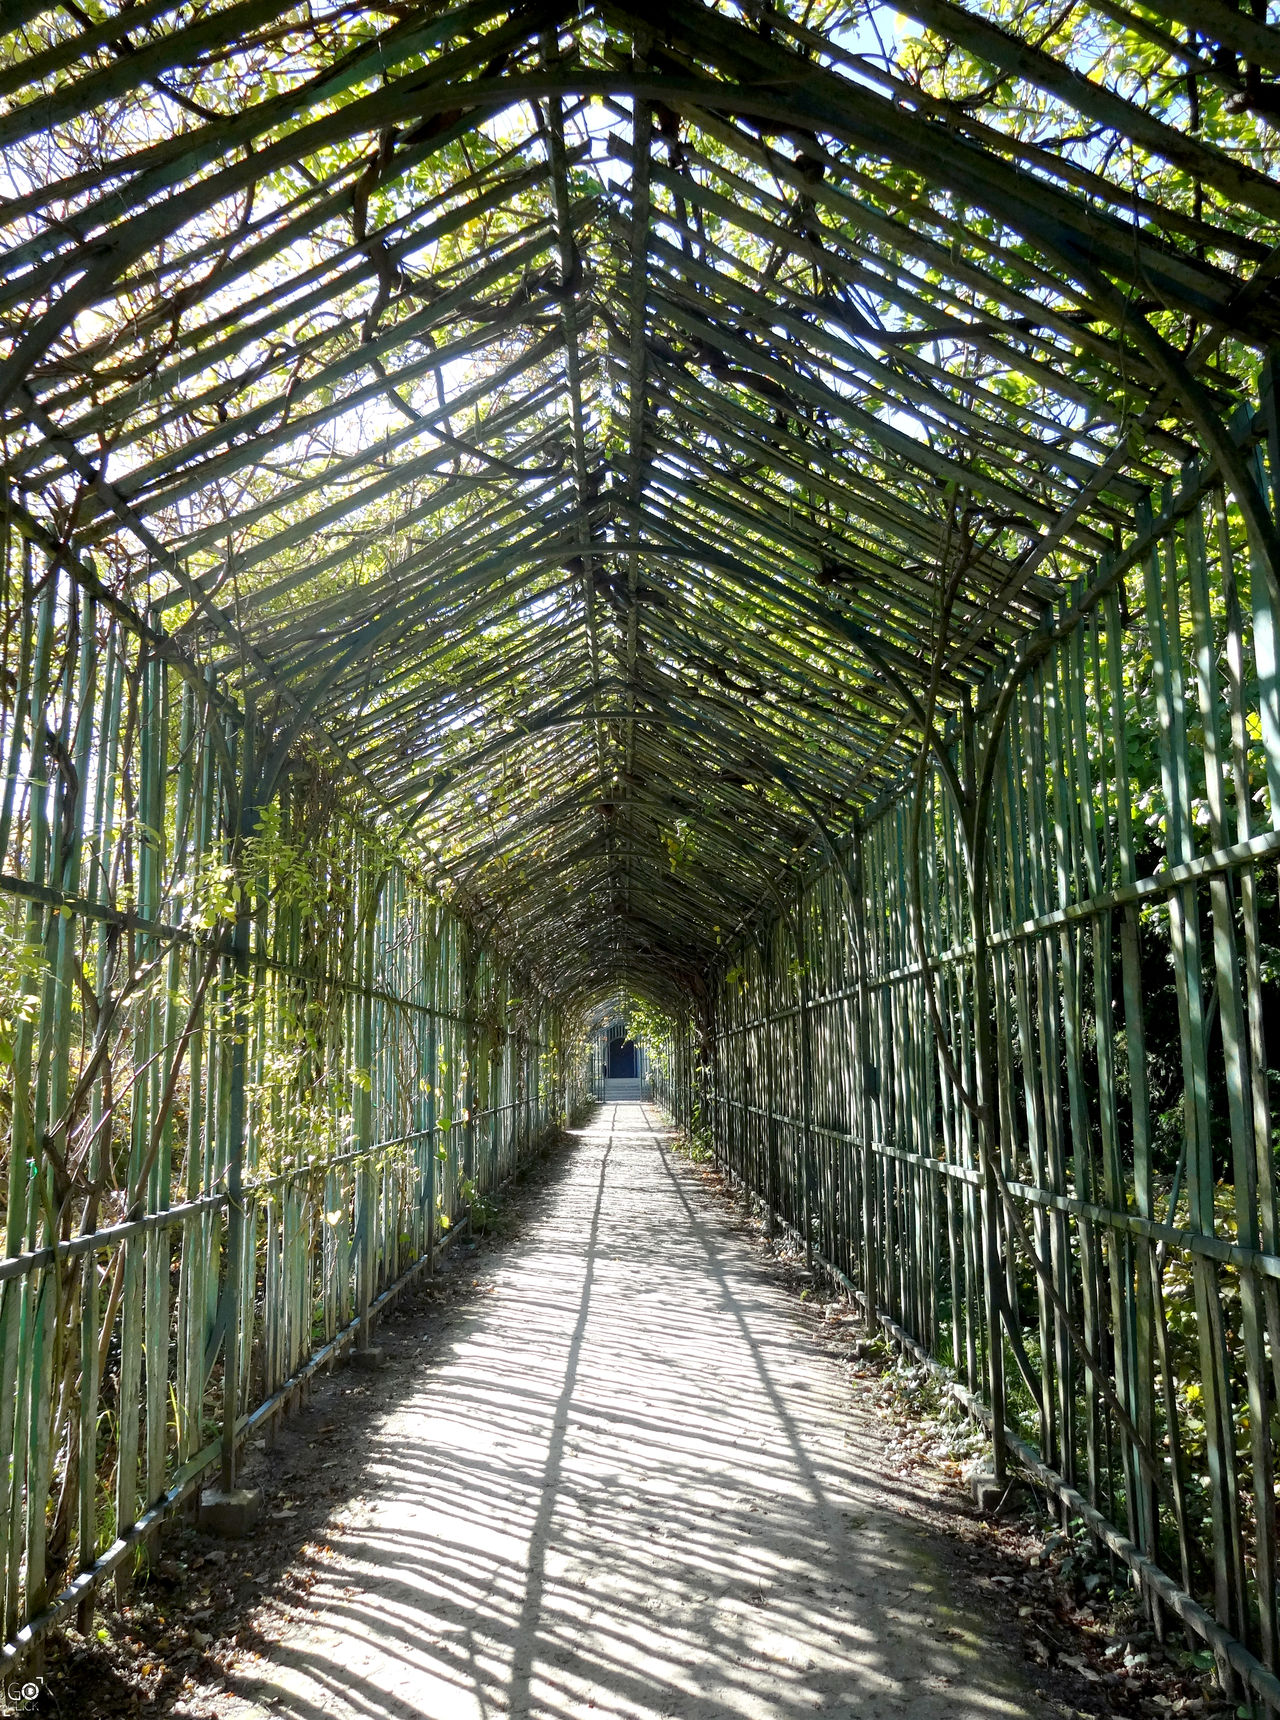 Run Into You Bamboo Grove Daylight Green Green Color Greenhouse Growth Nature Nature Nature Photography Outdoors Perspective Perspectives Photography Shadow Shadows Shadows & Lights Sun Sunlight Symmetrical Symmetry The Way Forward Travel Tree Tree Trees